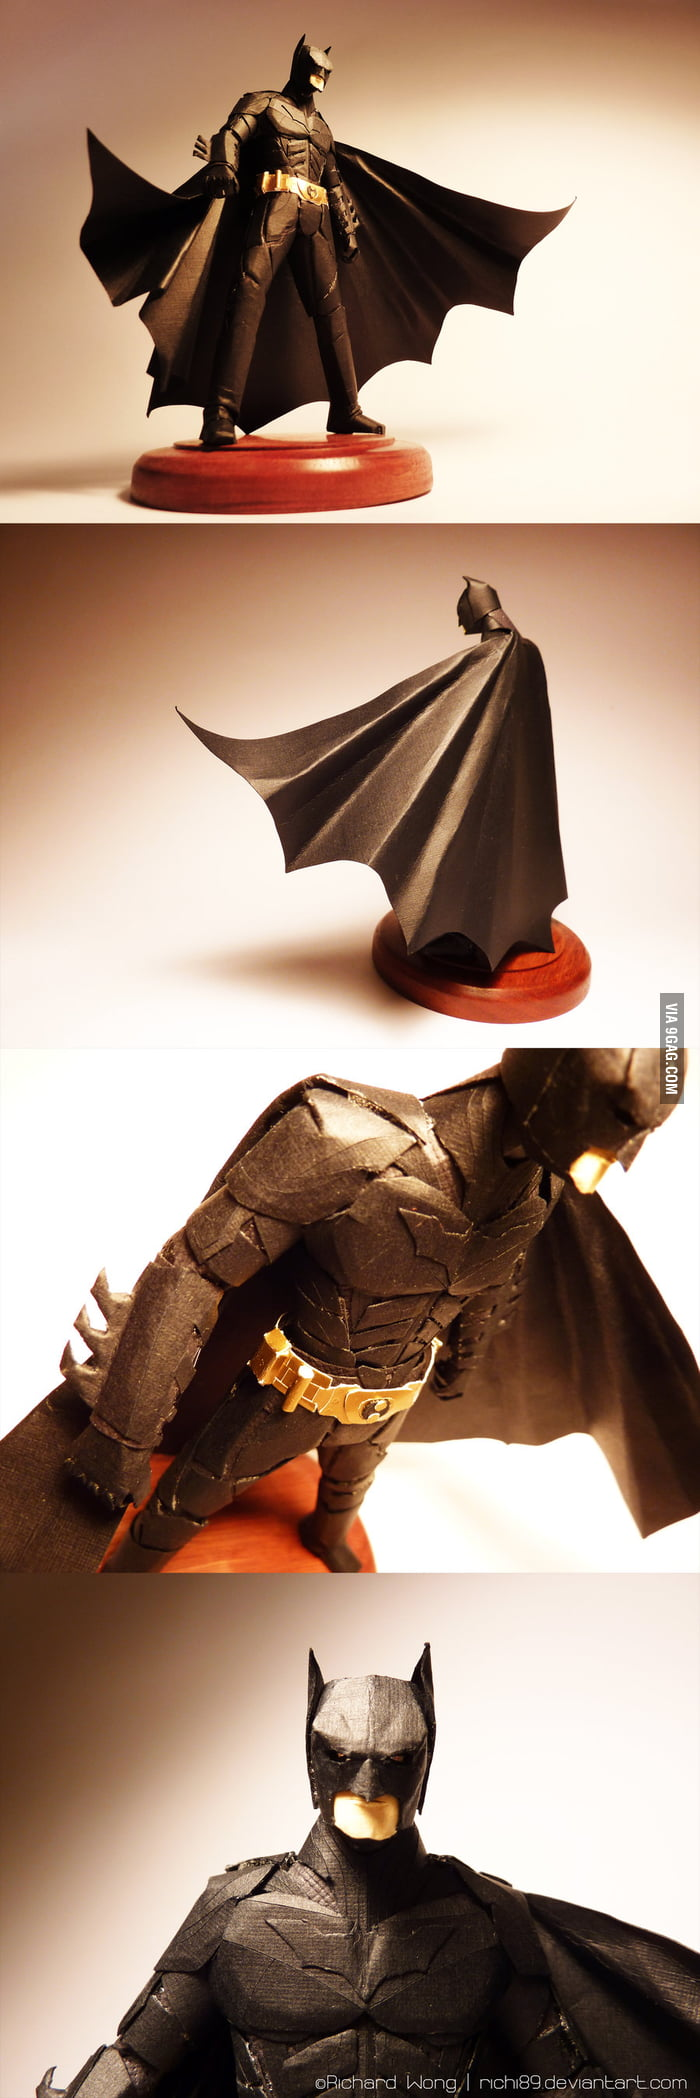 What my friend did last week - Paper Batman